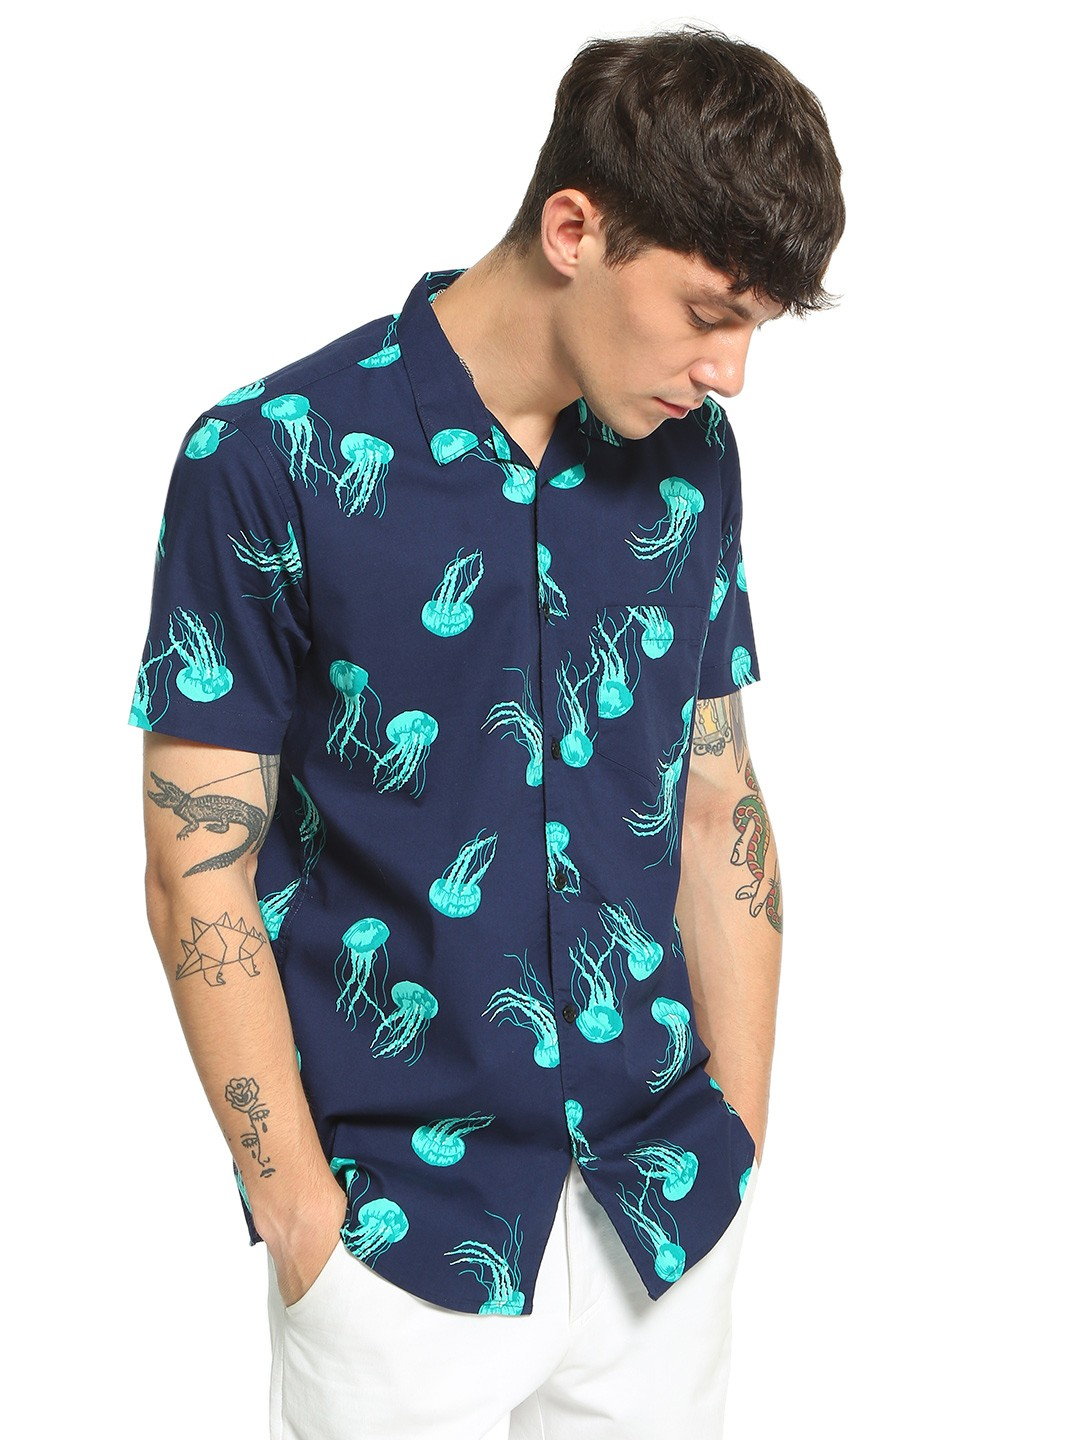 AMON Multi Jelly Fish Print Cuban Shirt 1